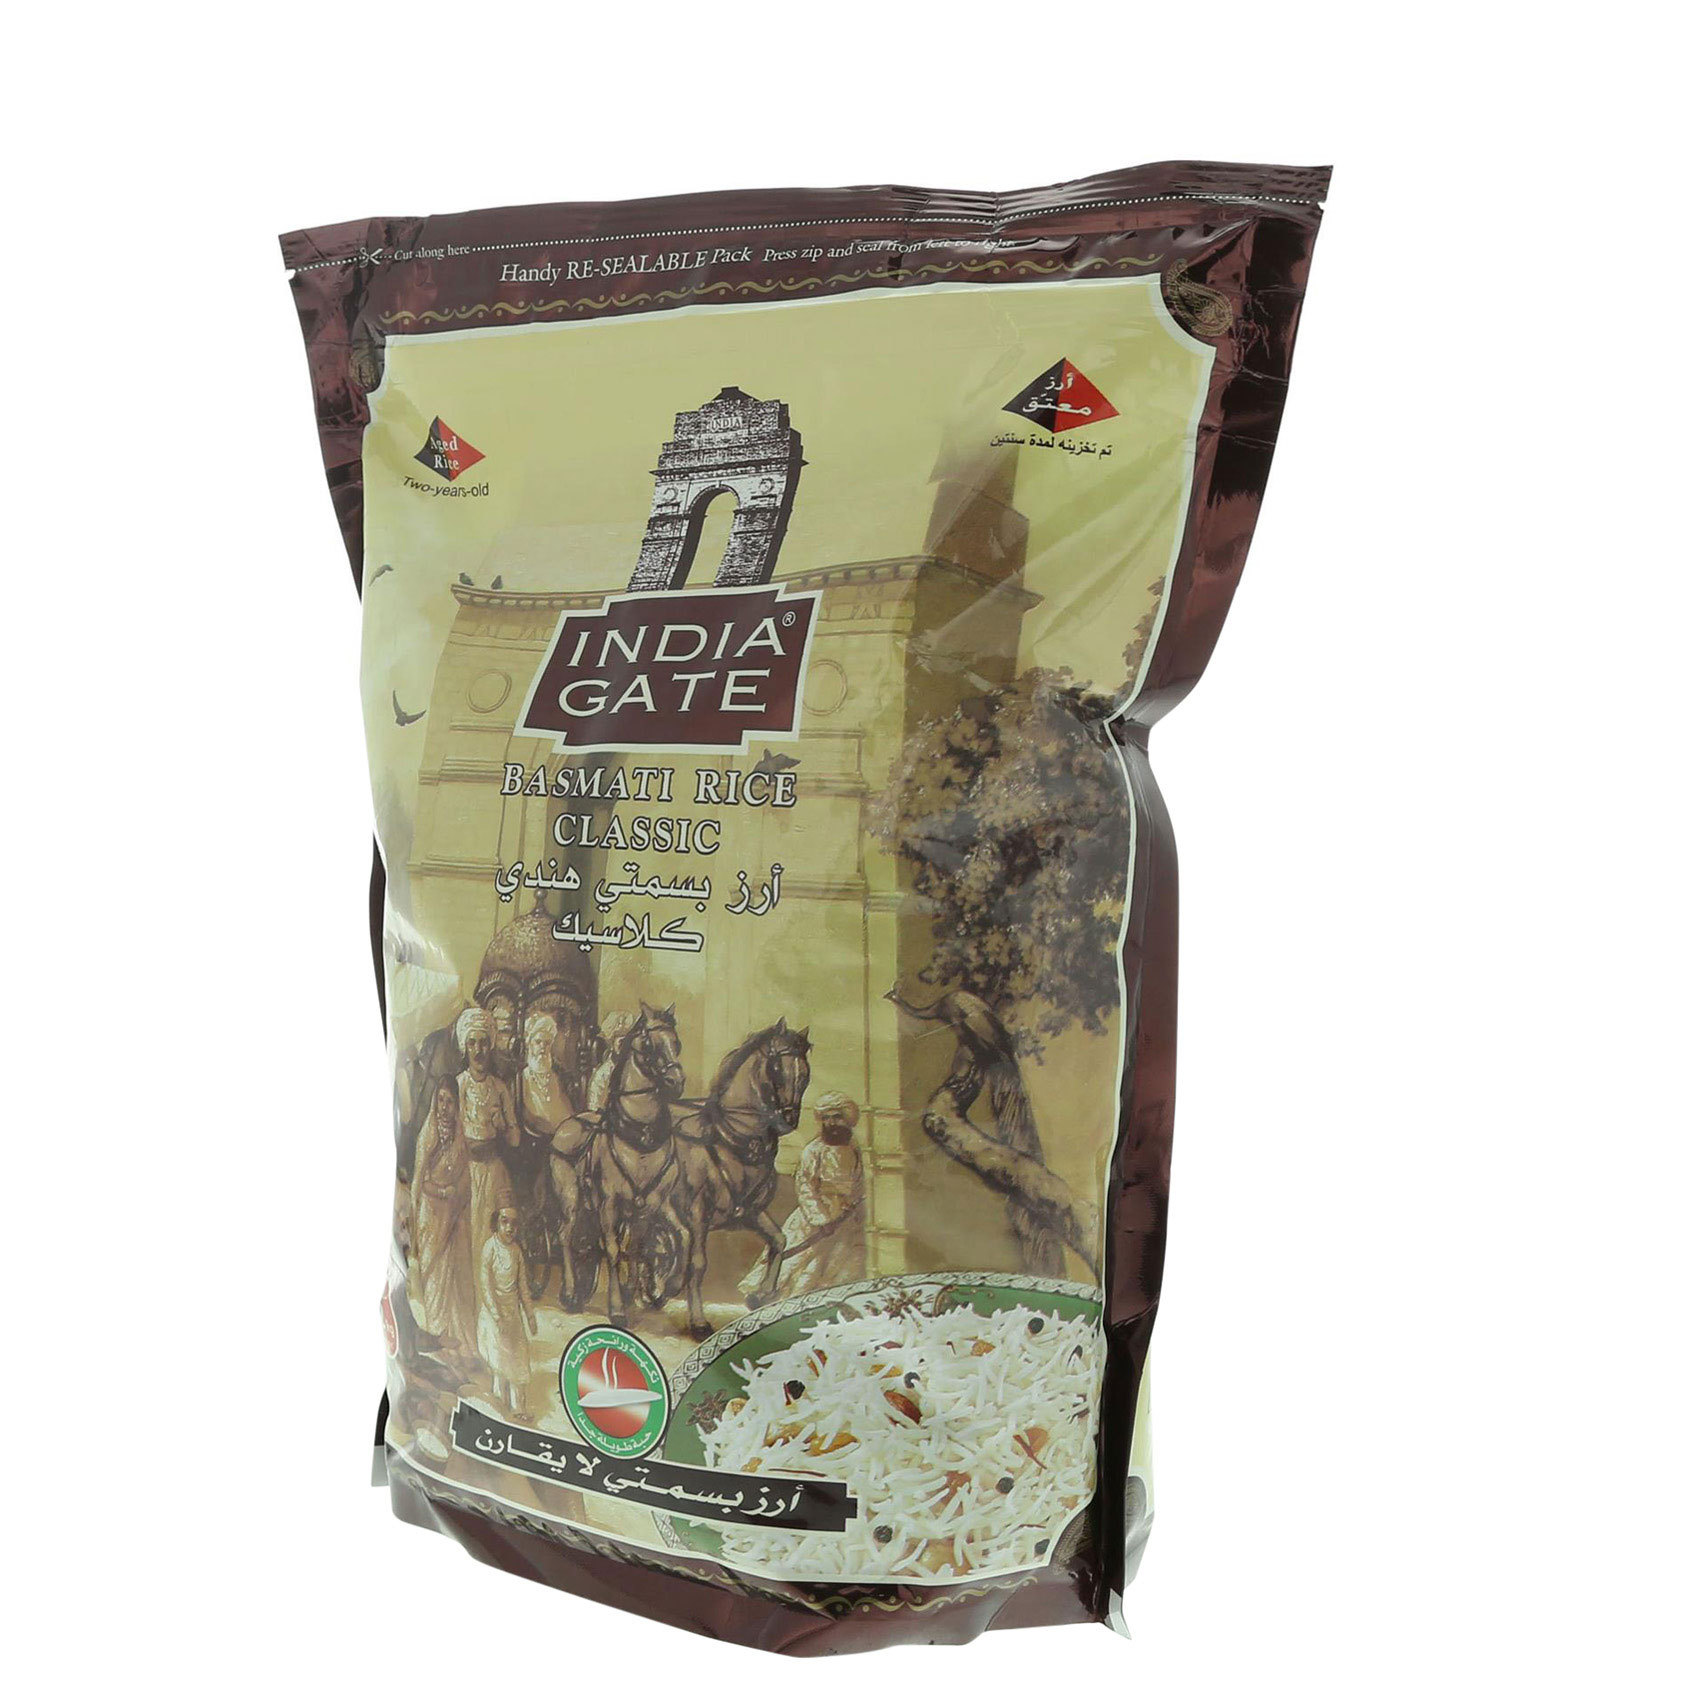 INDIA GATE BASMATI RICE 2KG